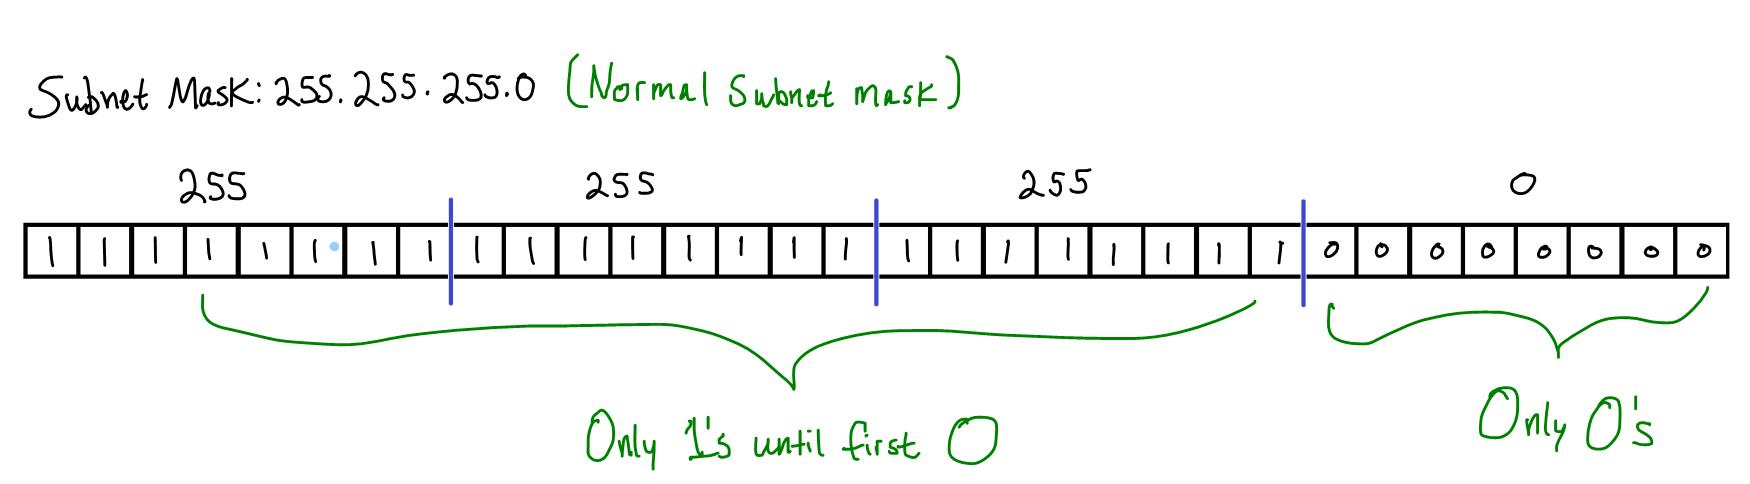 hight resolution of since the most common scenario is to have a subnet mask that begins with contiguous 1 s and ends with contiguous 0 s all that s really required is for us